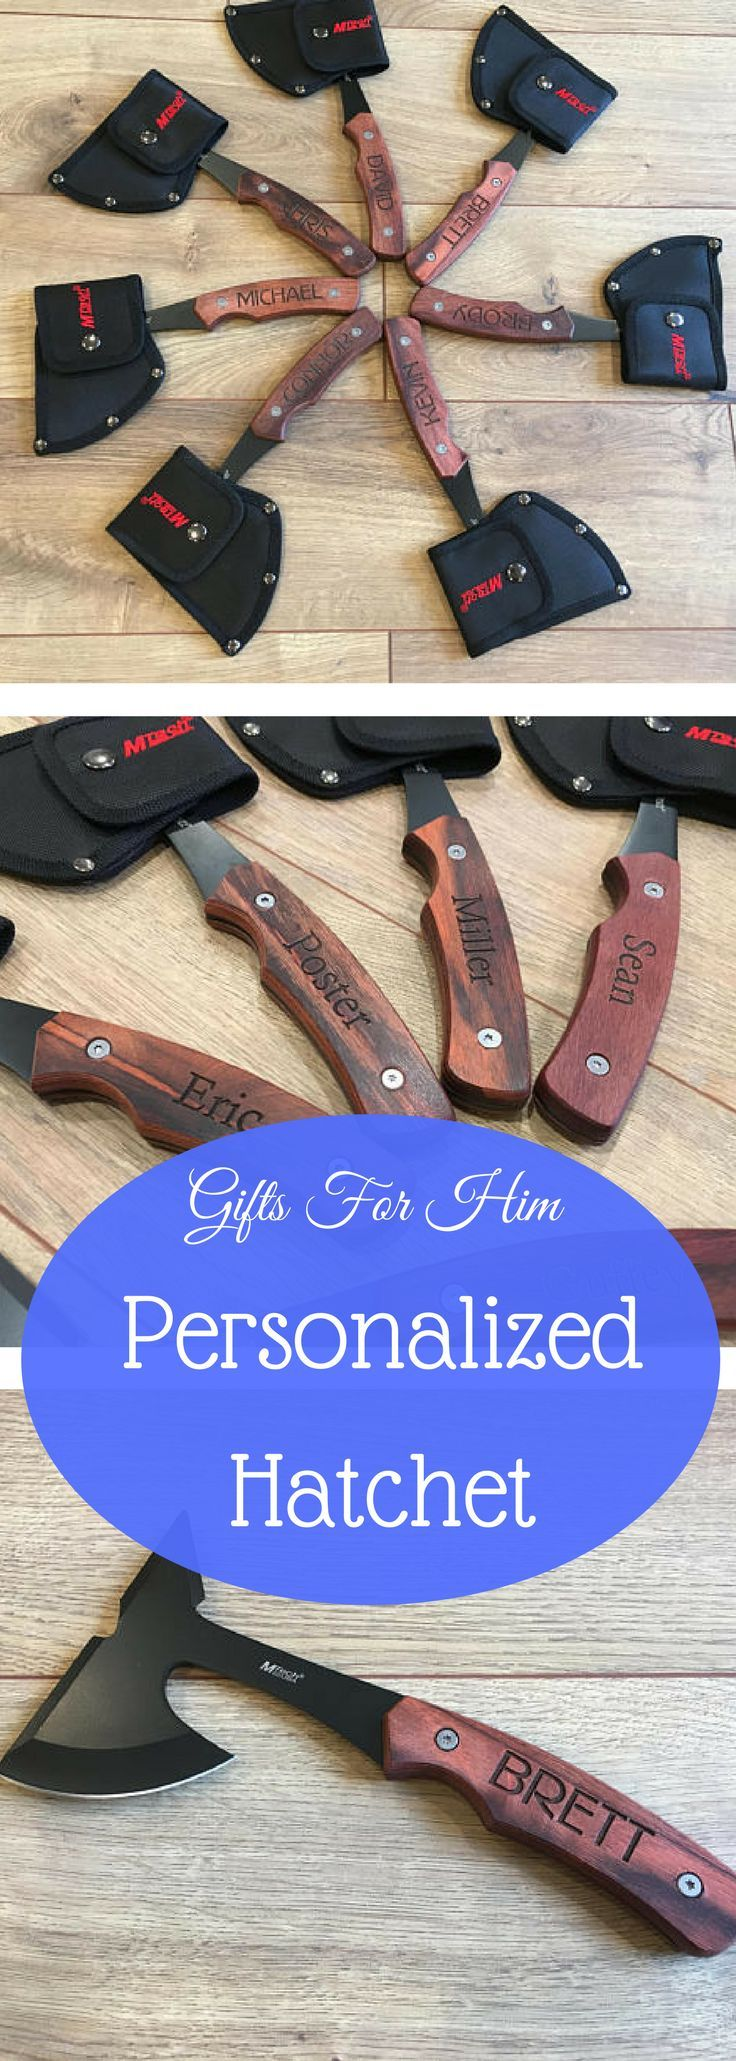 Valentines Day Gift for Him | Guy Gifts | Guy Best Friend Gift | Gifts for Men | Gifts for Boyfriend | Gifts for Him | Engraved Axe, Hatchet #valentinesday #giftsforhim #ad